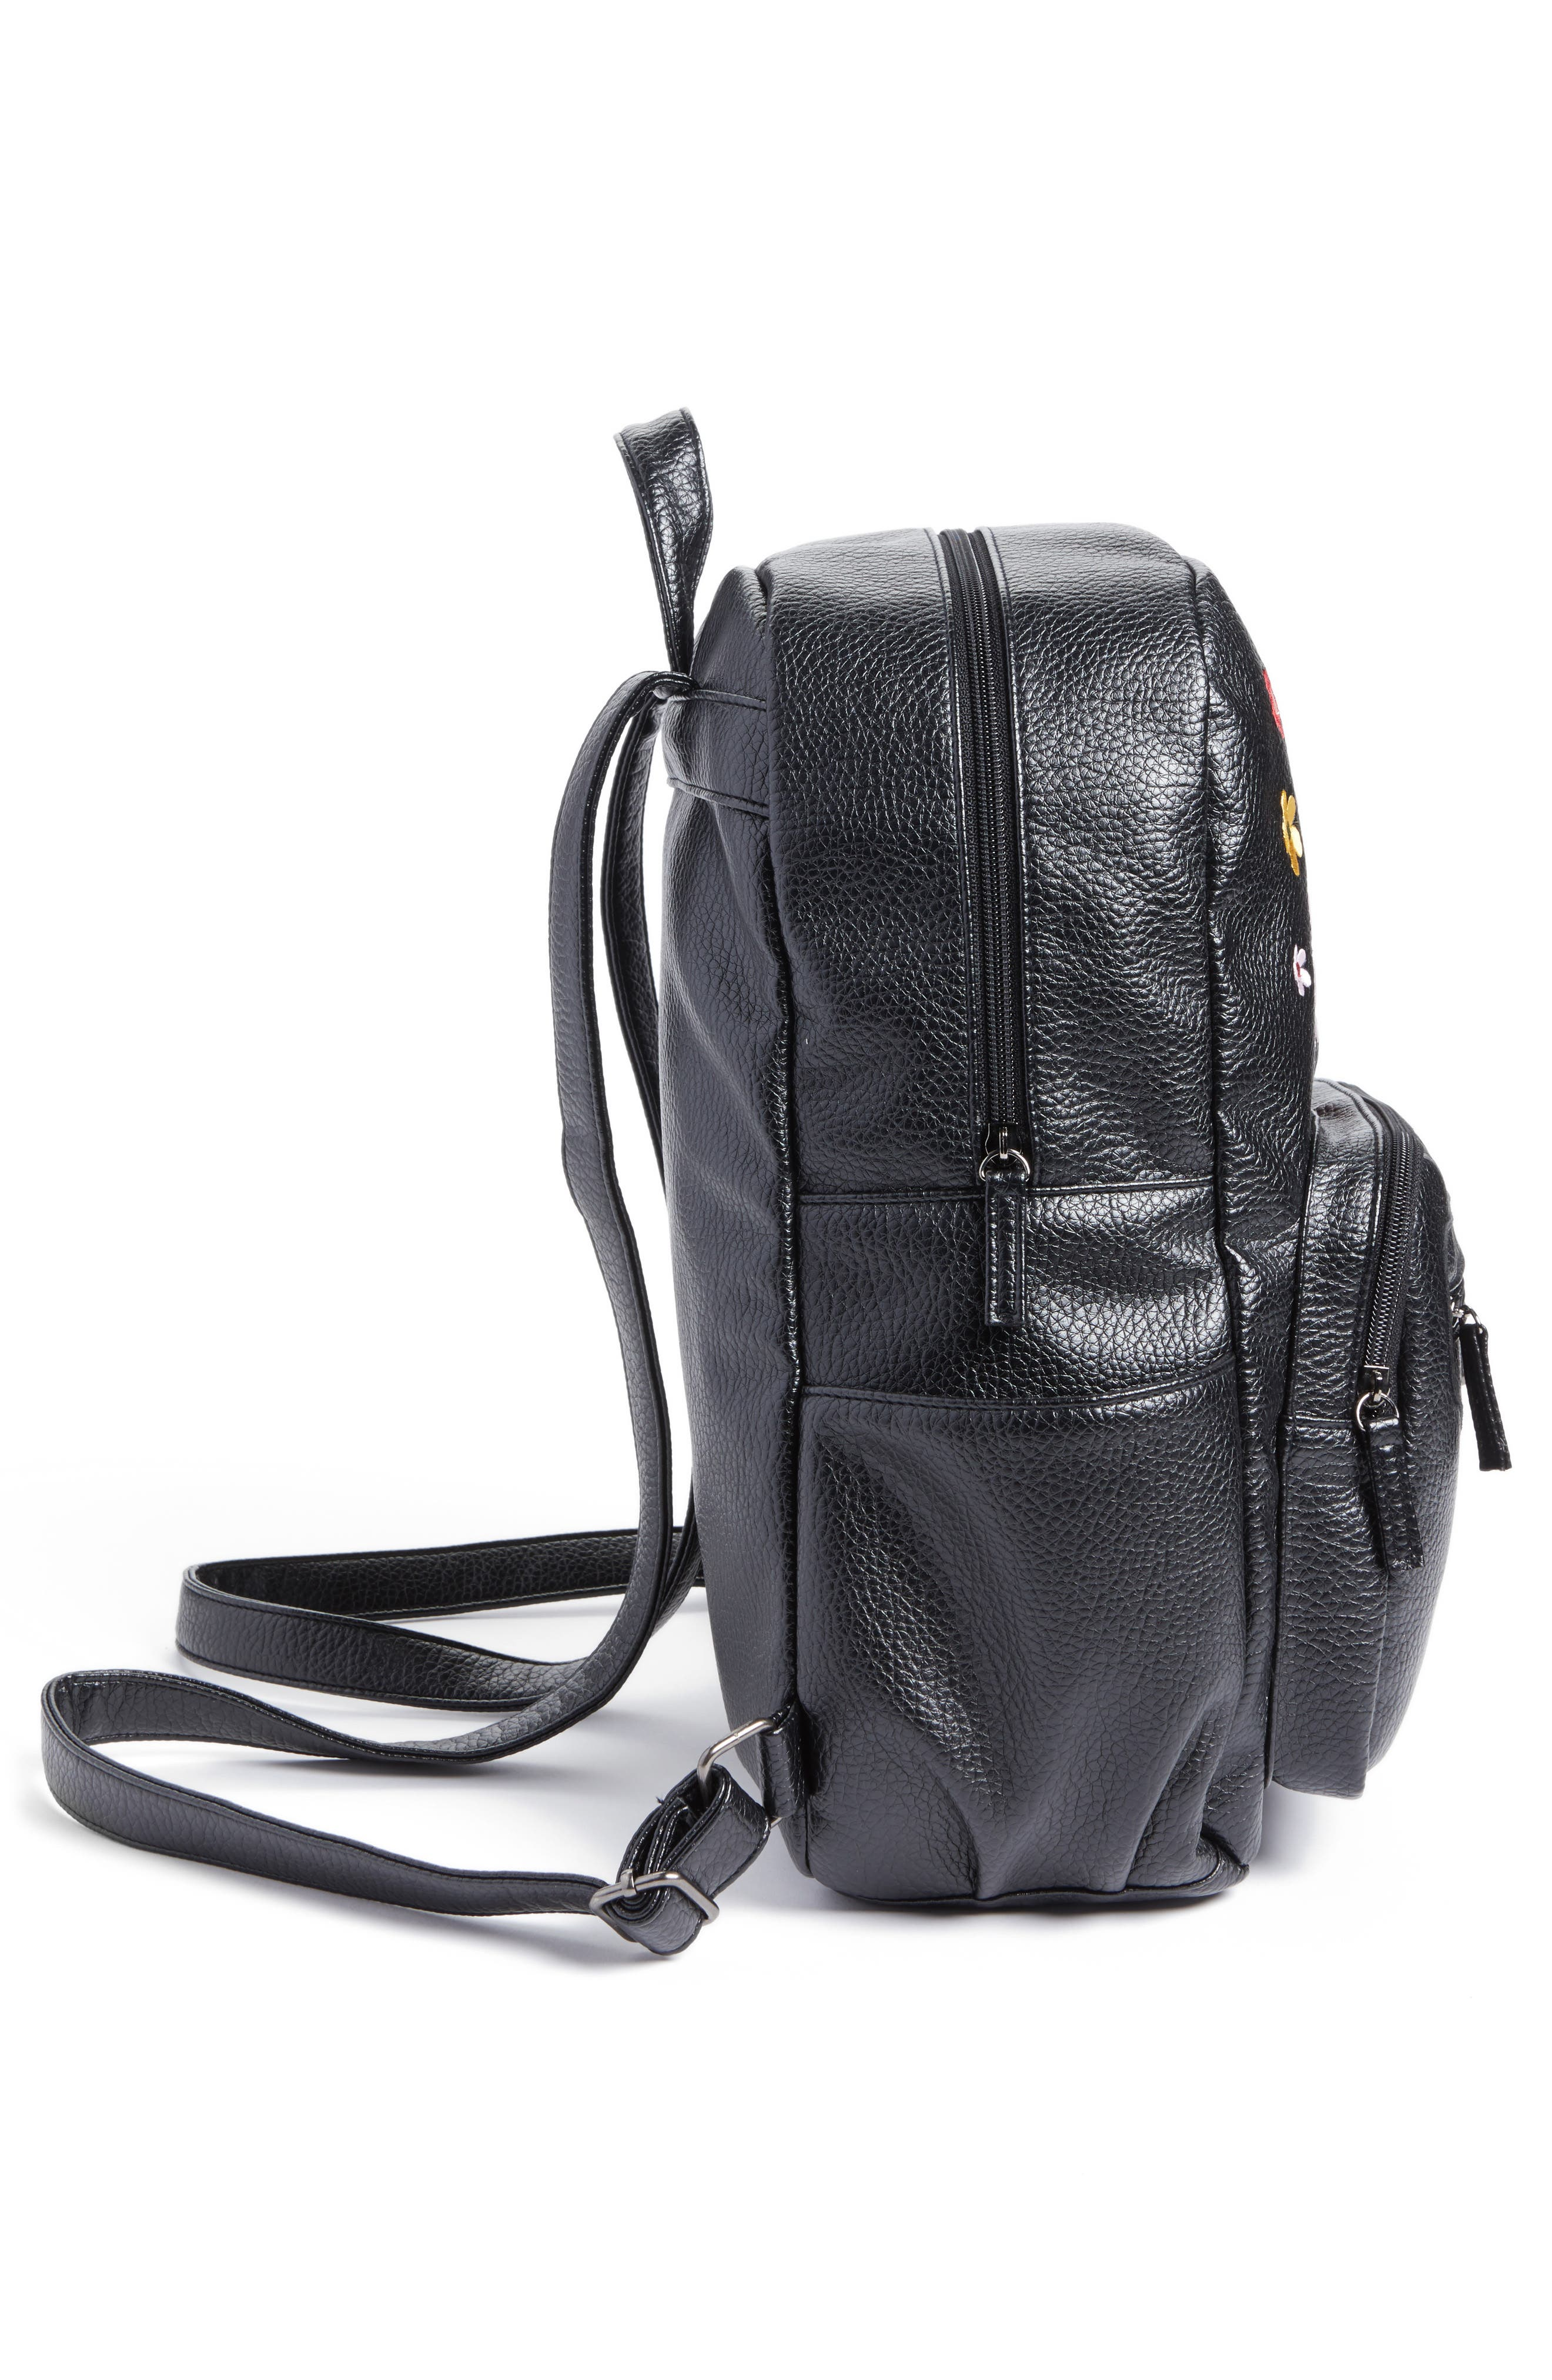 Embroidered Backpack,                             Alternate thumbnail 4, color,                             001